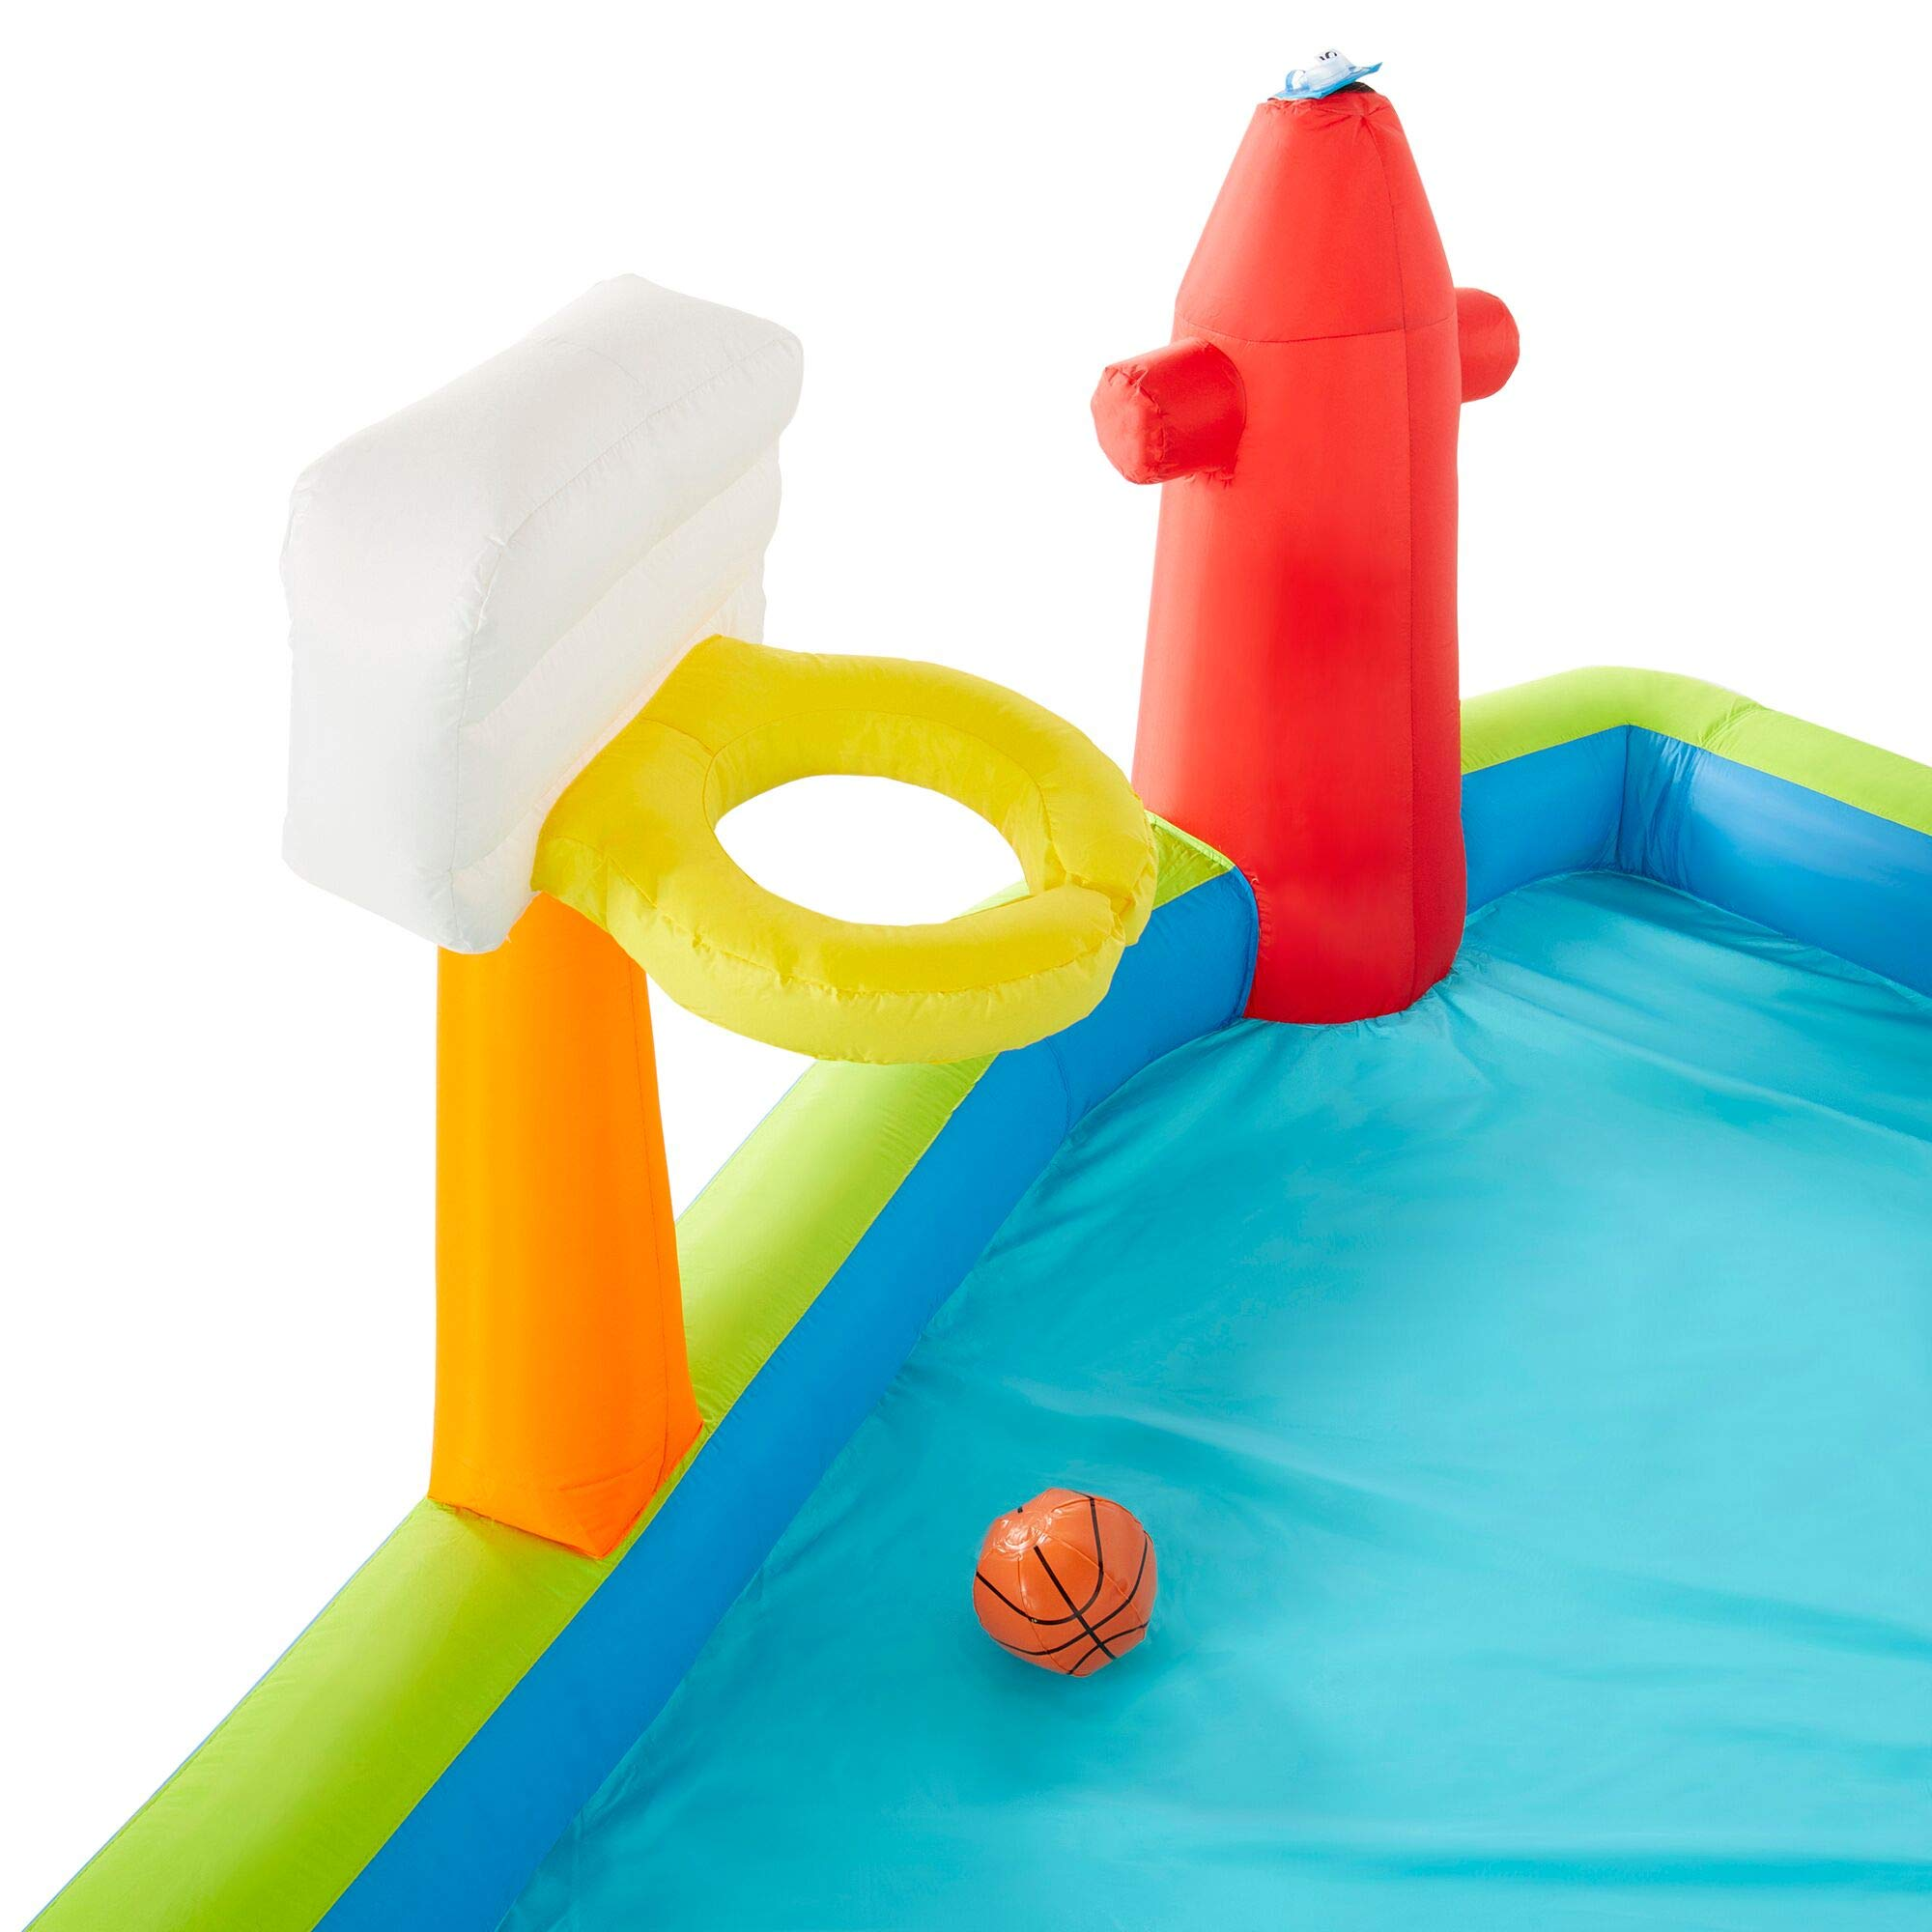 Riptide Triple Fun Inflatable PVC Water Park with 3 Slides & Obstacle Course by Riptide (Image #5)